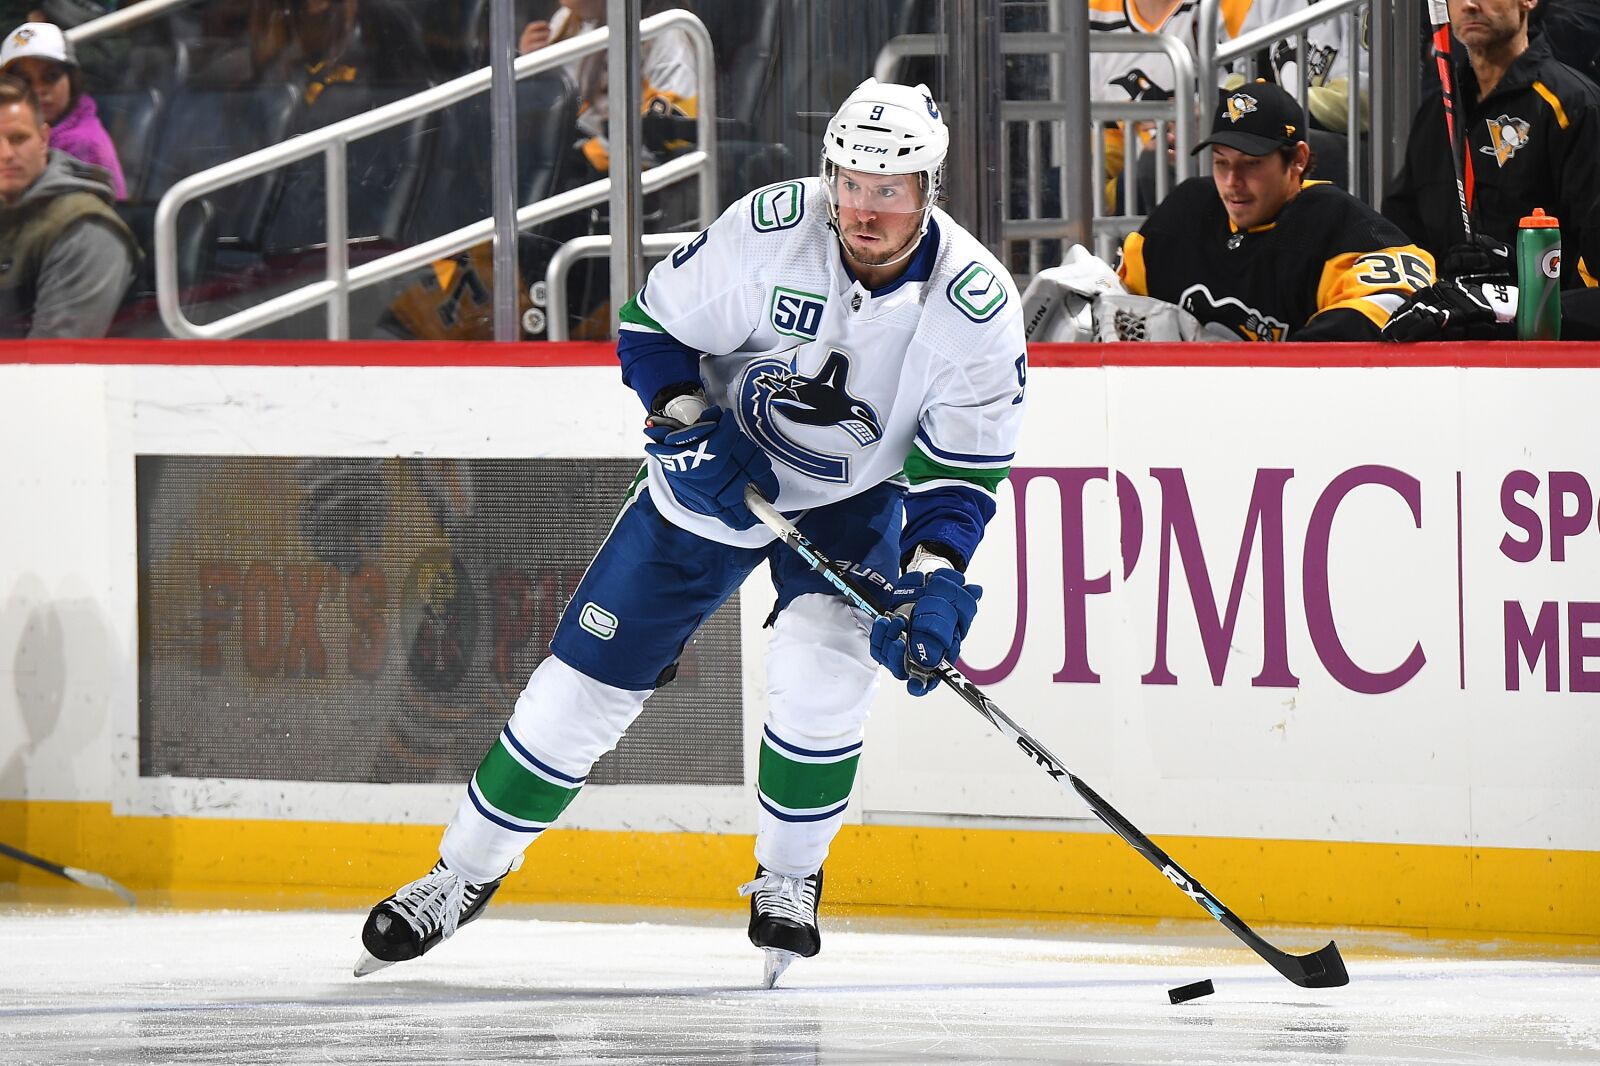 Canucks: There is no more disputing the J.T. Miller trade